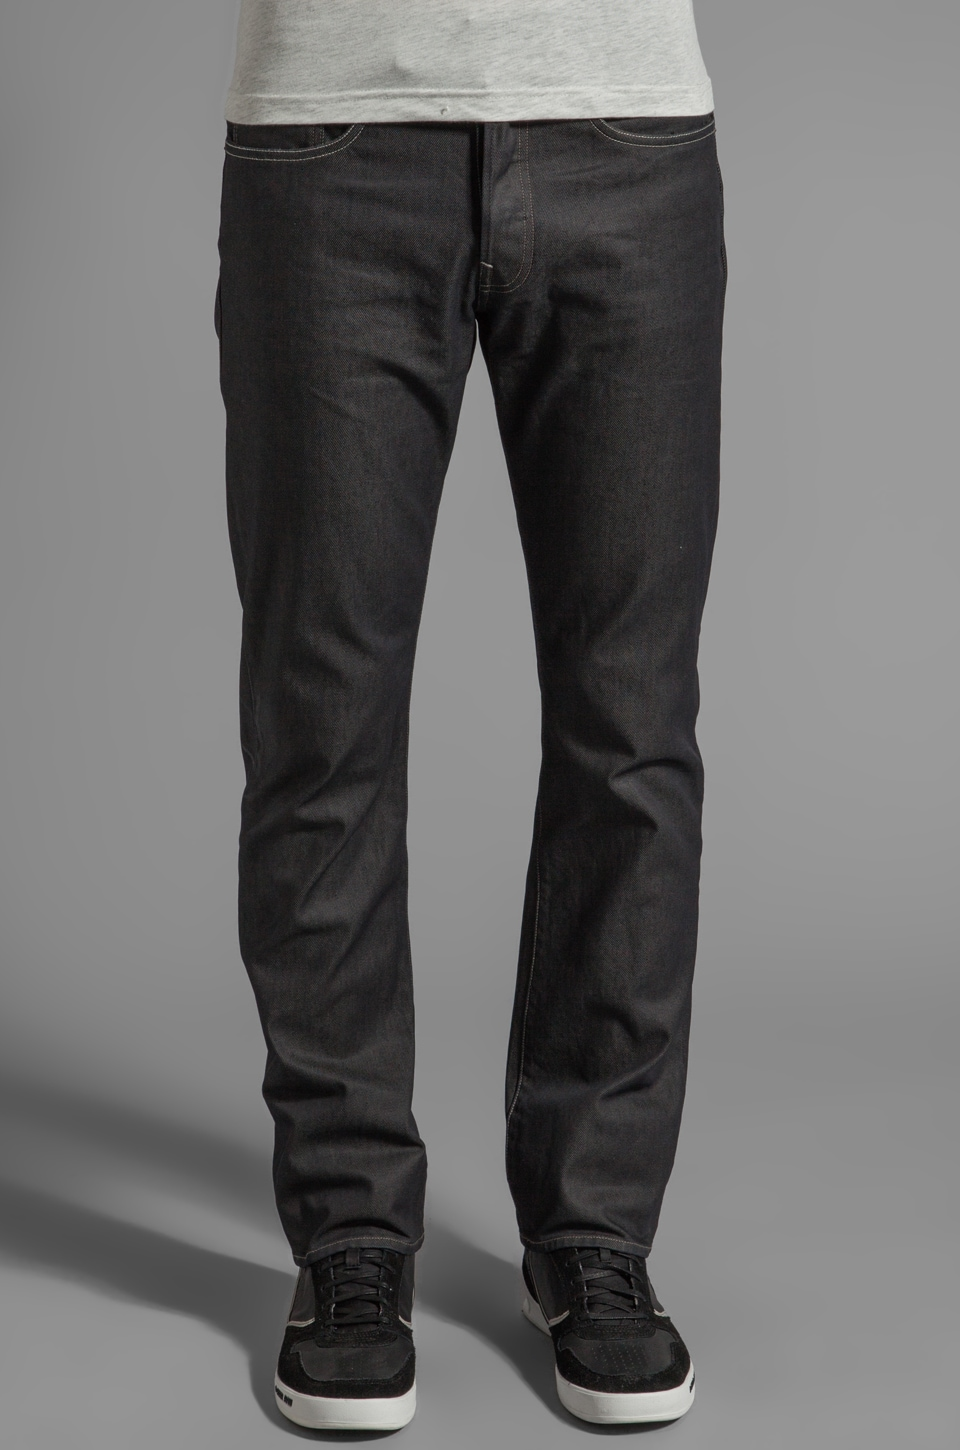 G-Star 3301 Straight in Brace Denim Raw